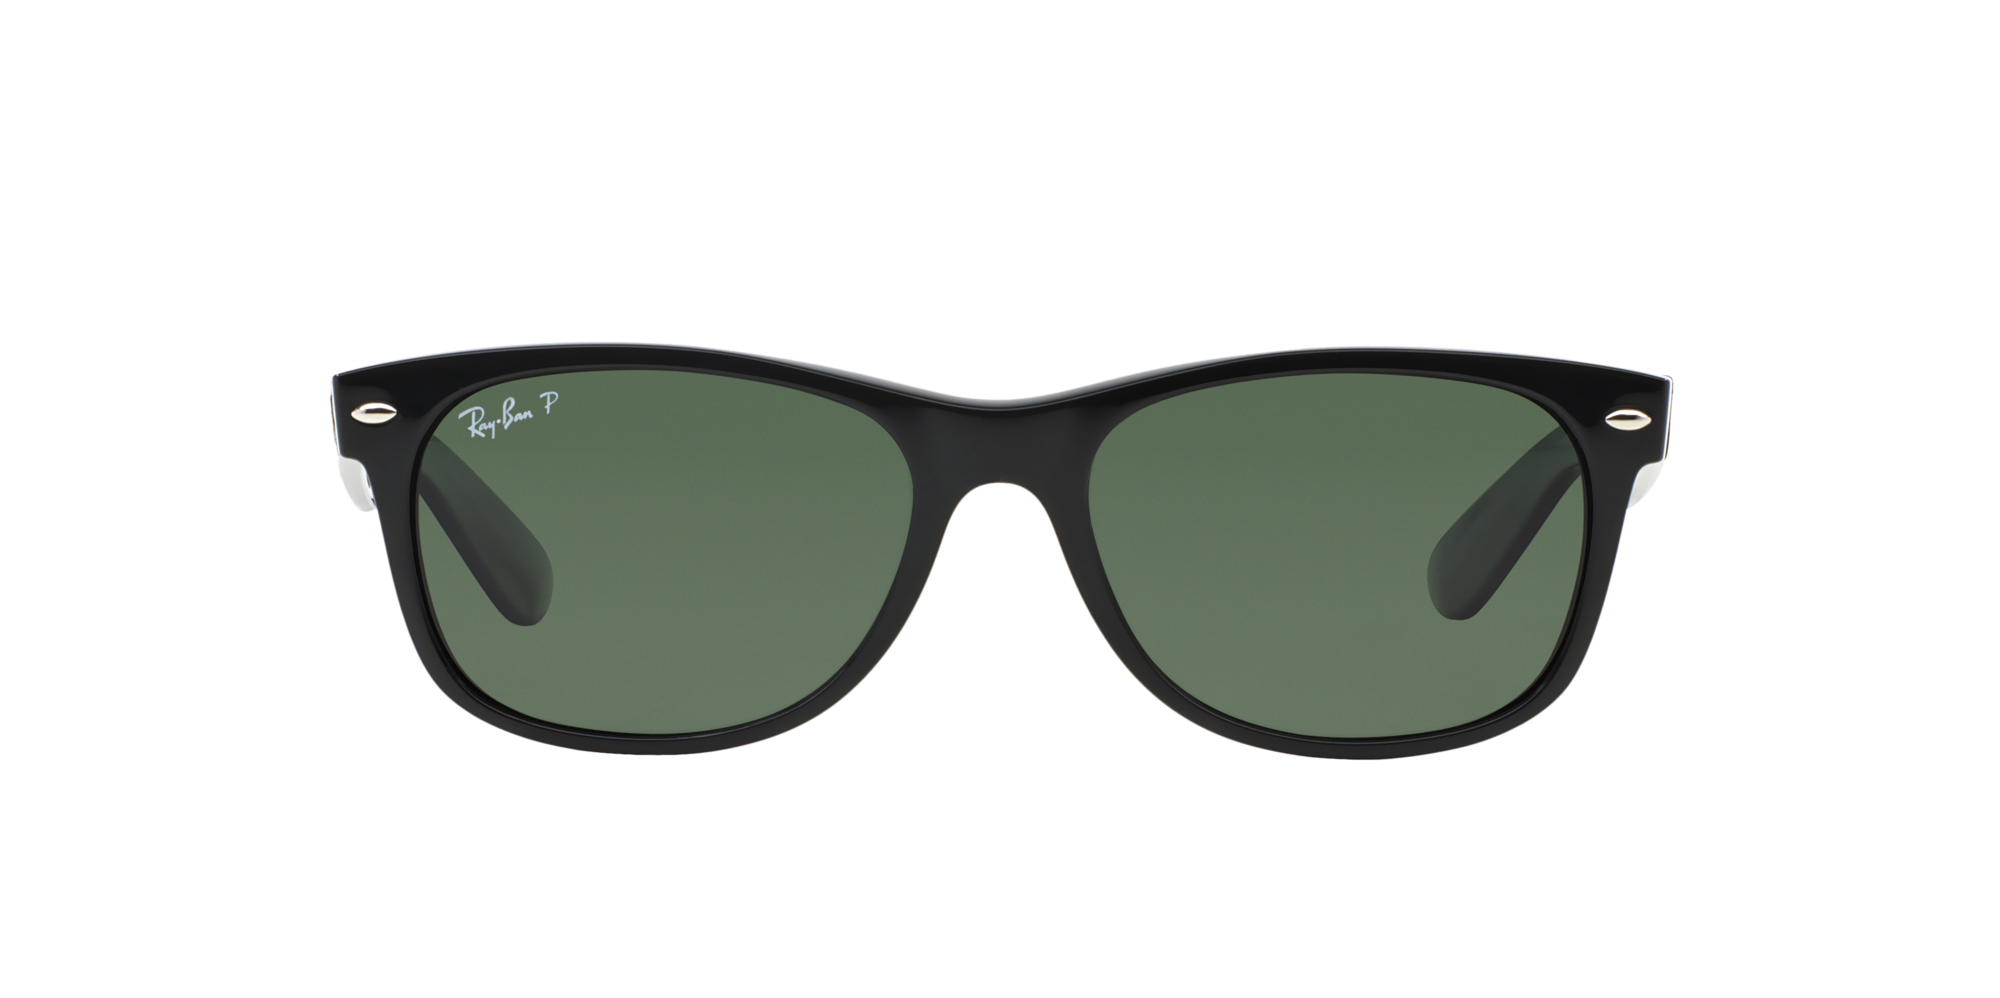 RAY-BAN NEW WAYFARER RB 2132 901/58 POLARIZADO-360